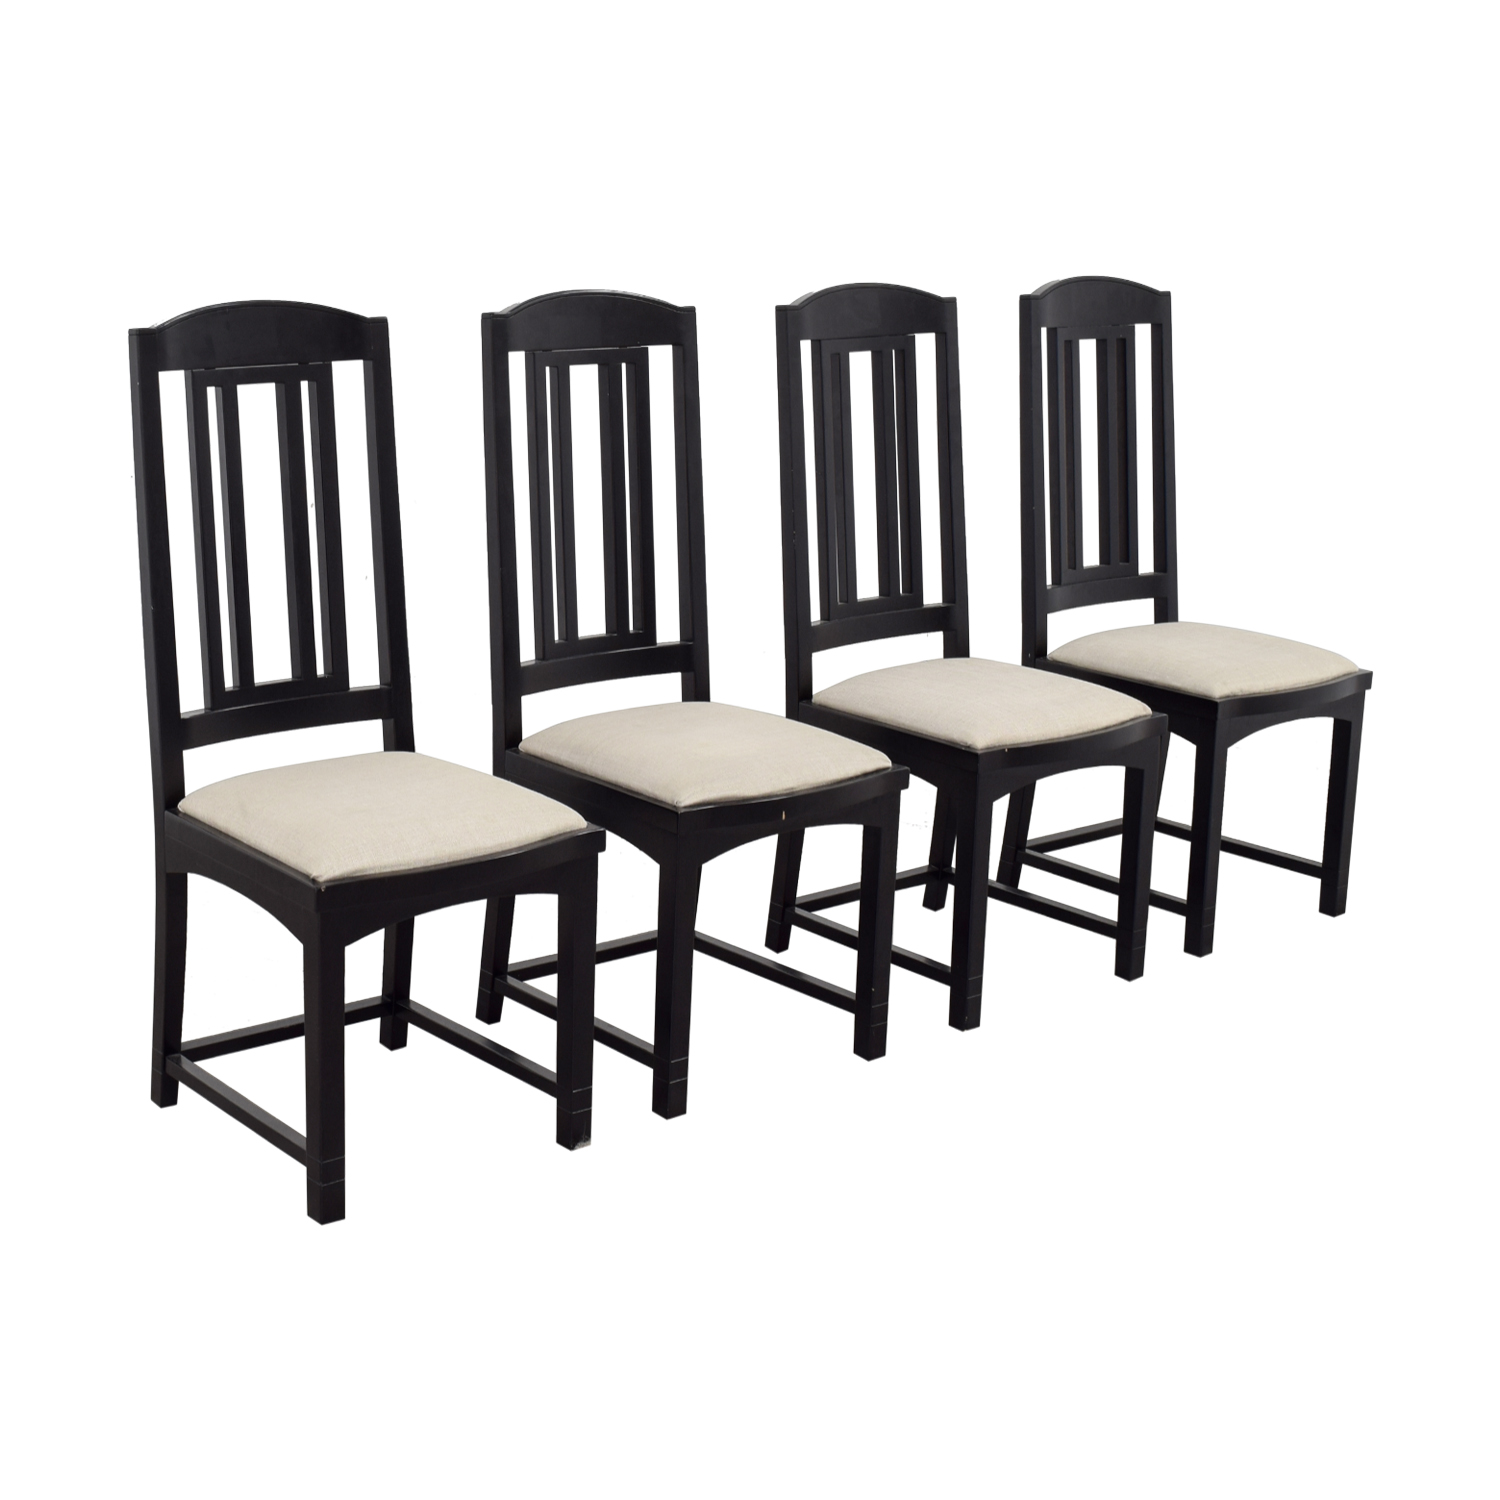 PACE Collection PACE Collection Black Dining Chairs nj